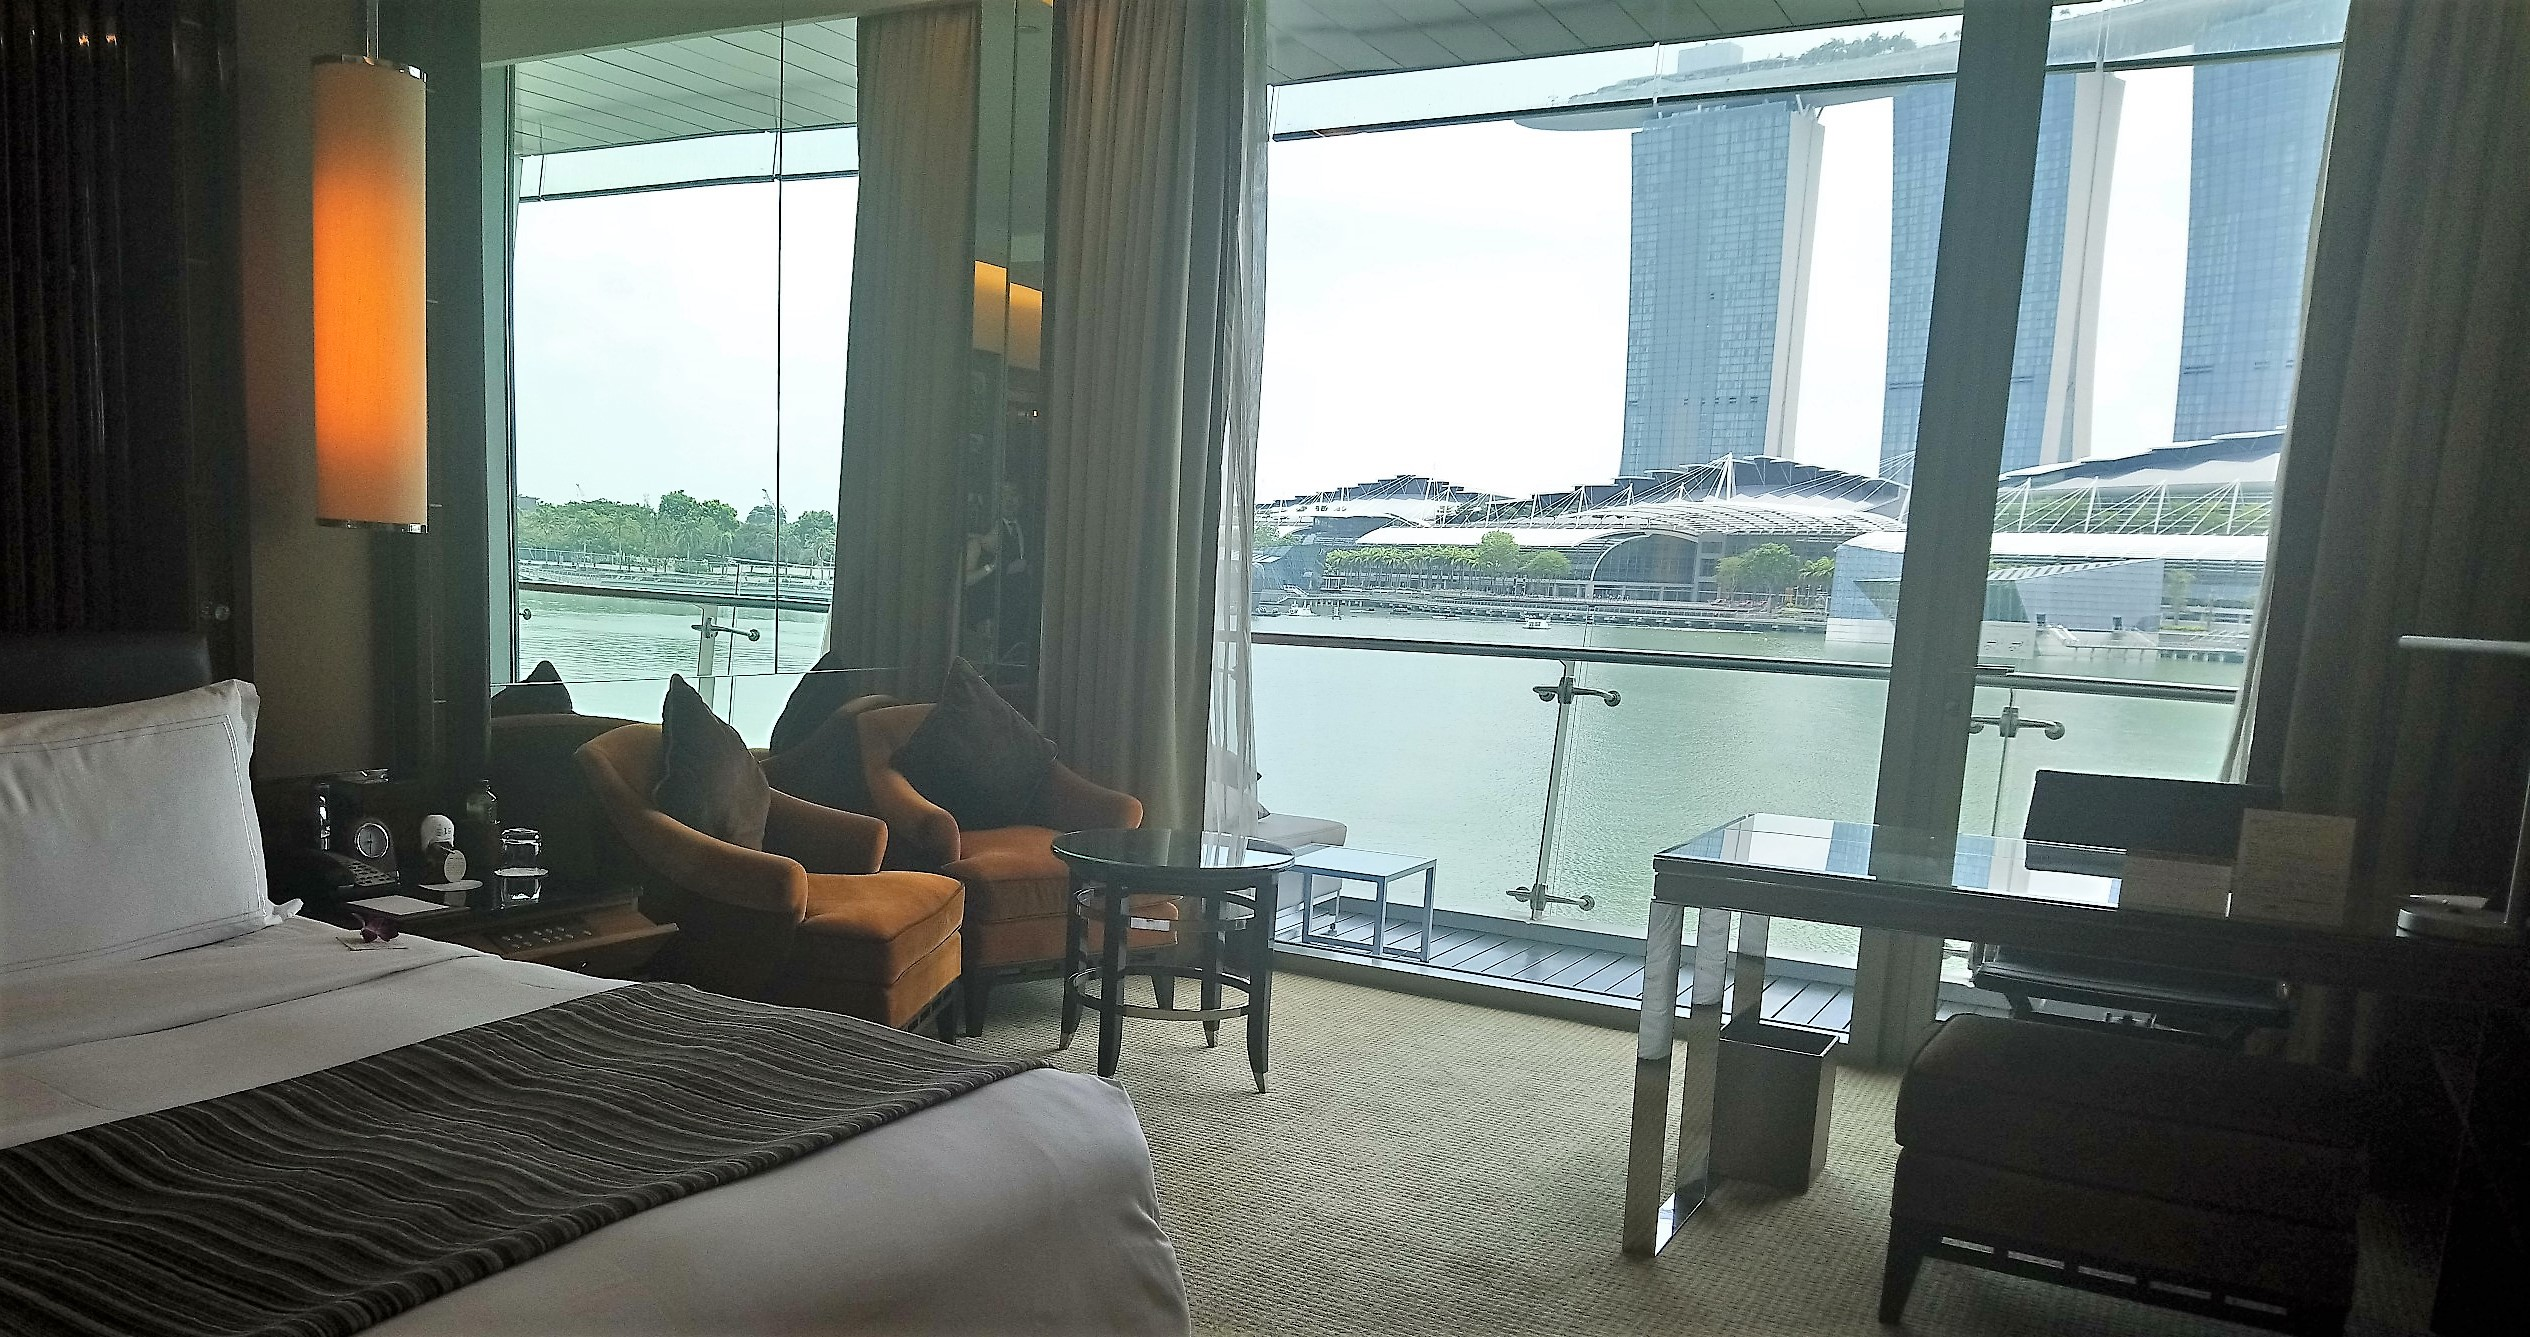 View of the balcony in a Bay View Room at The Fullerton Bay Hotel Singapore